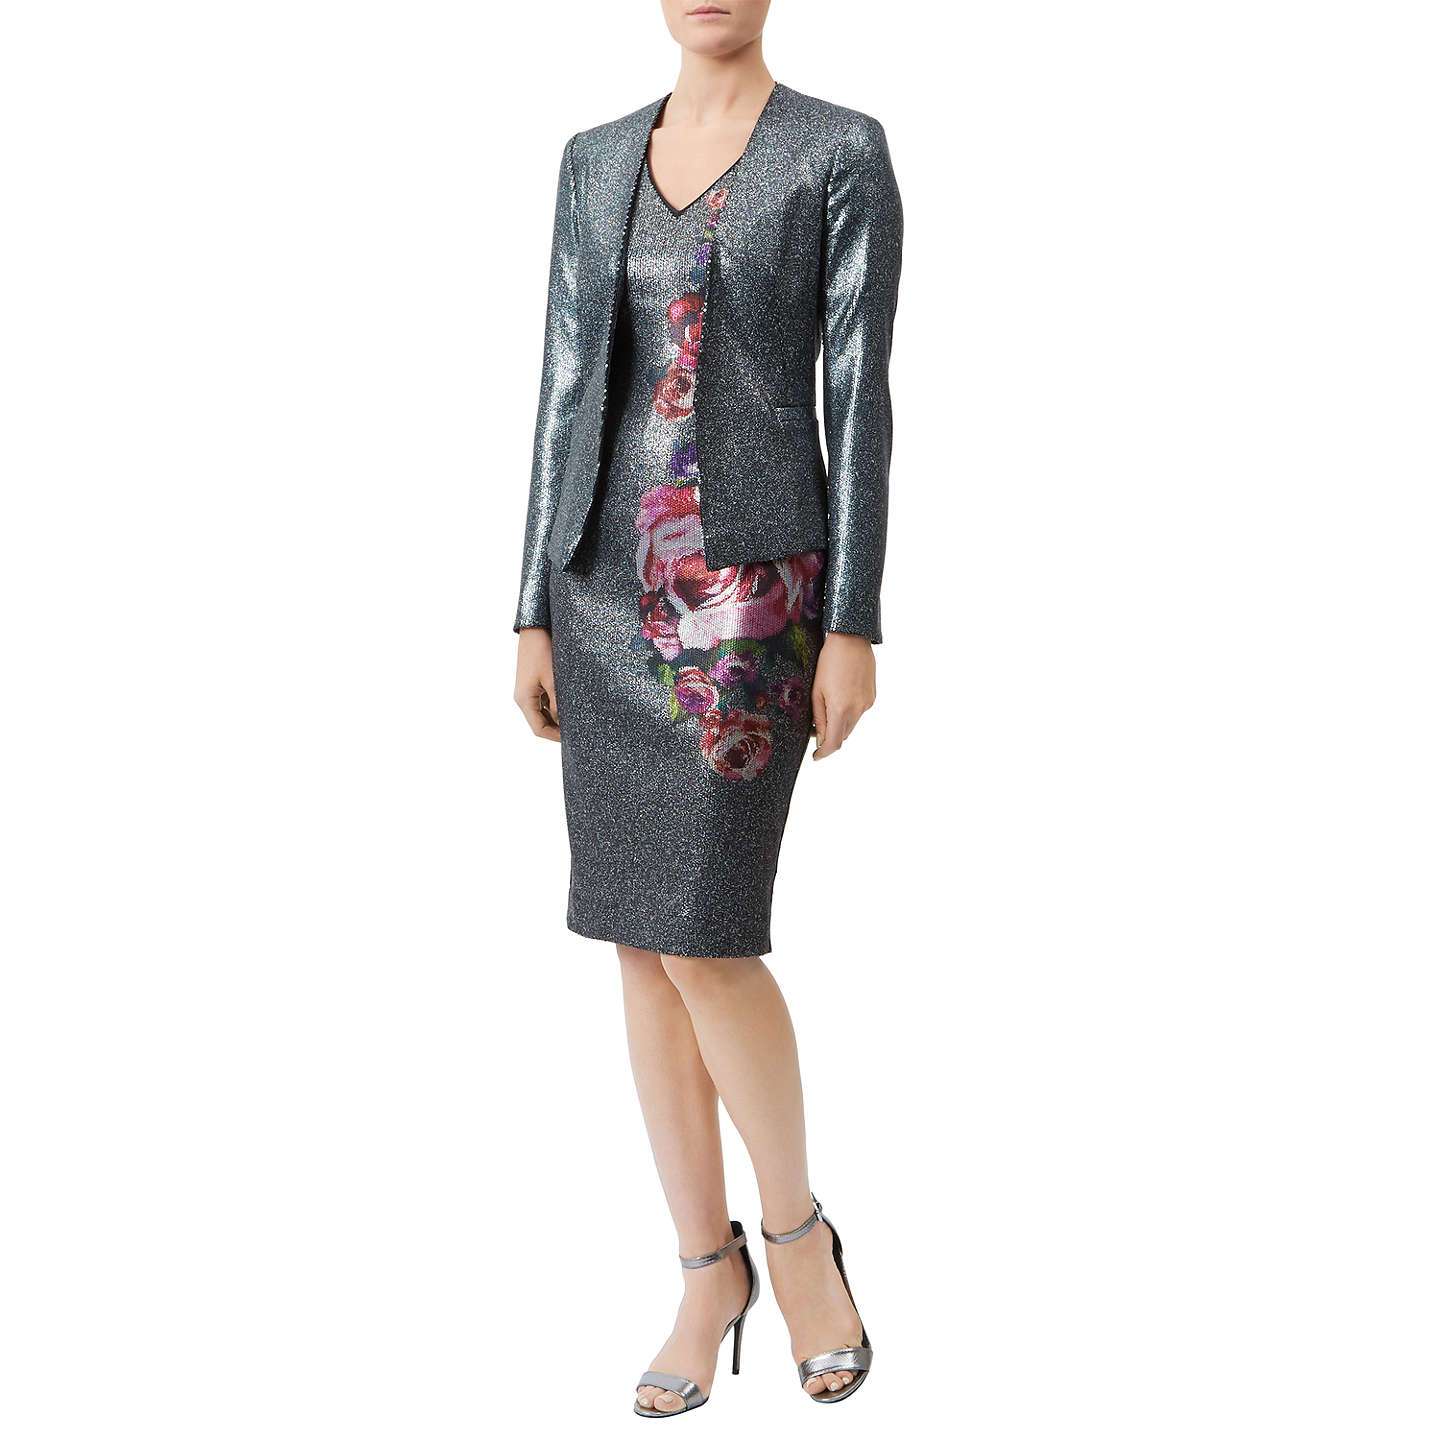 BuyDamsel in a dress Primrose Jacket, Multi, 8 Online at johnlewis.com